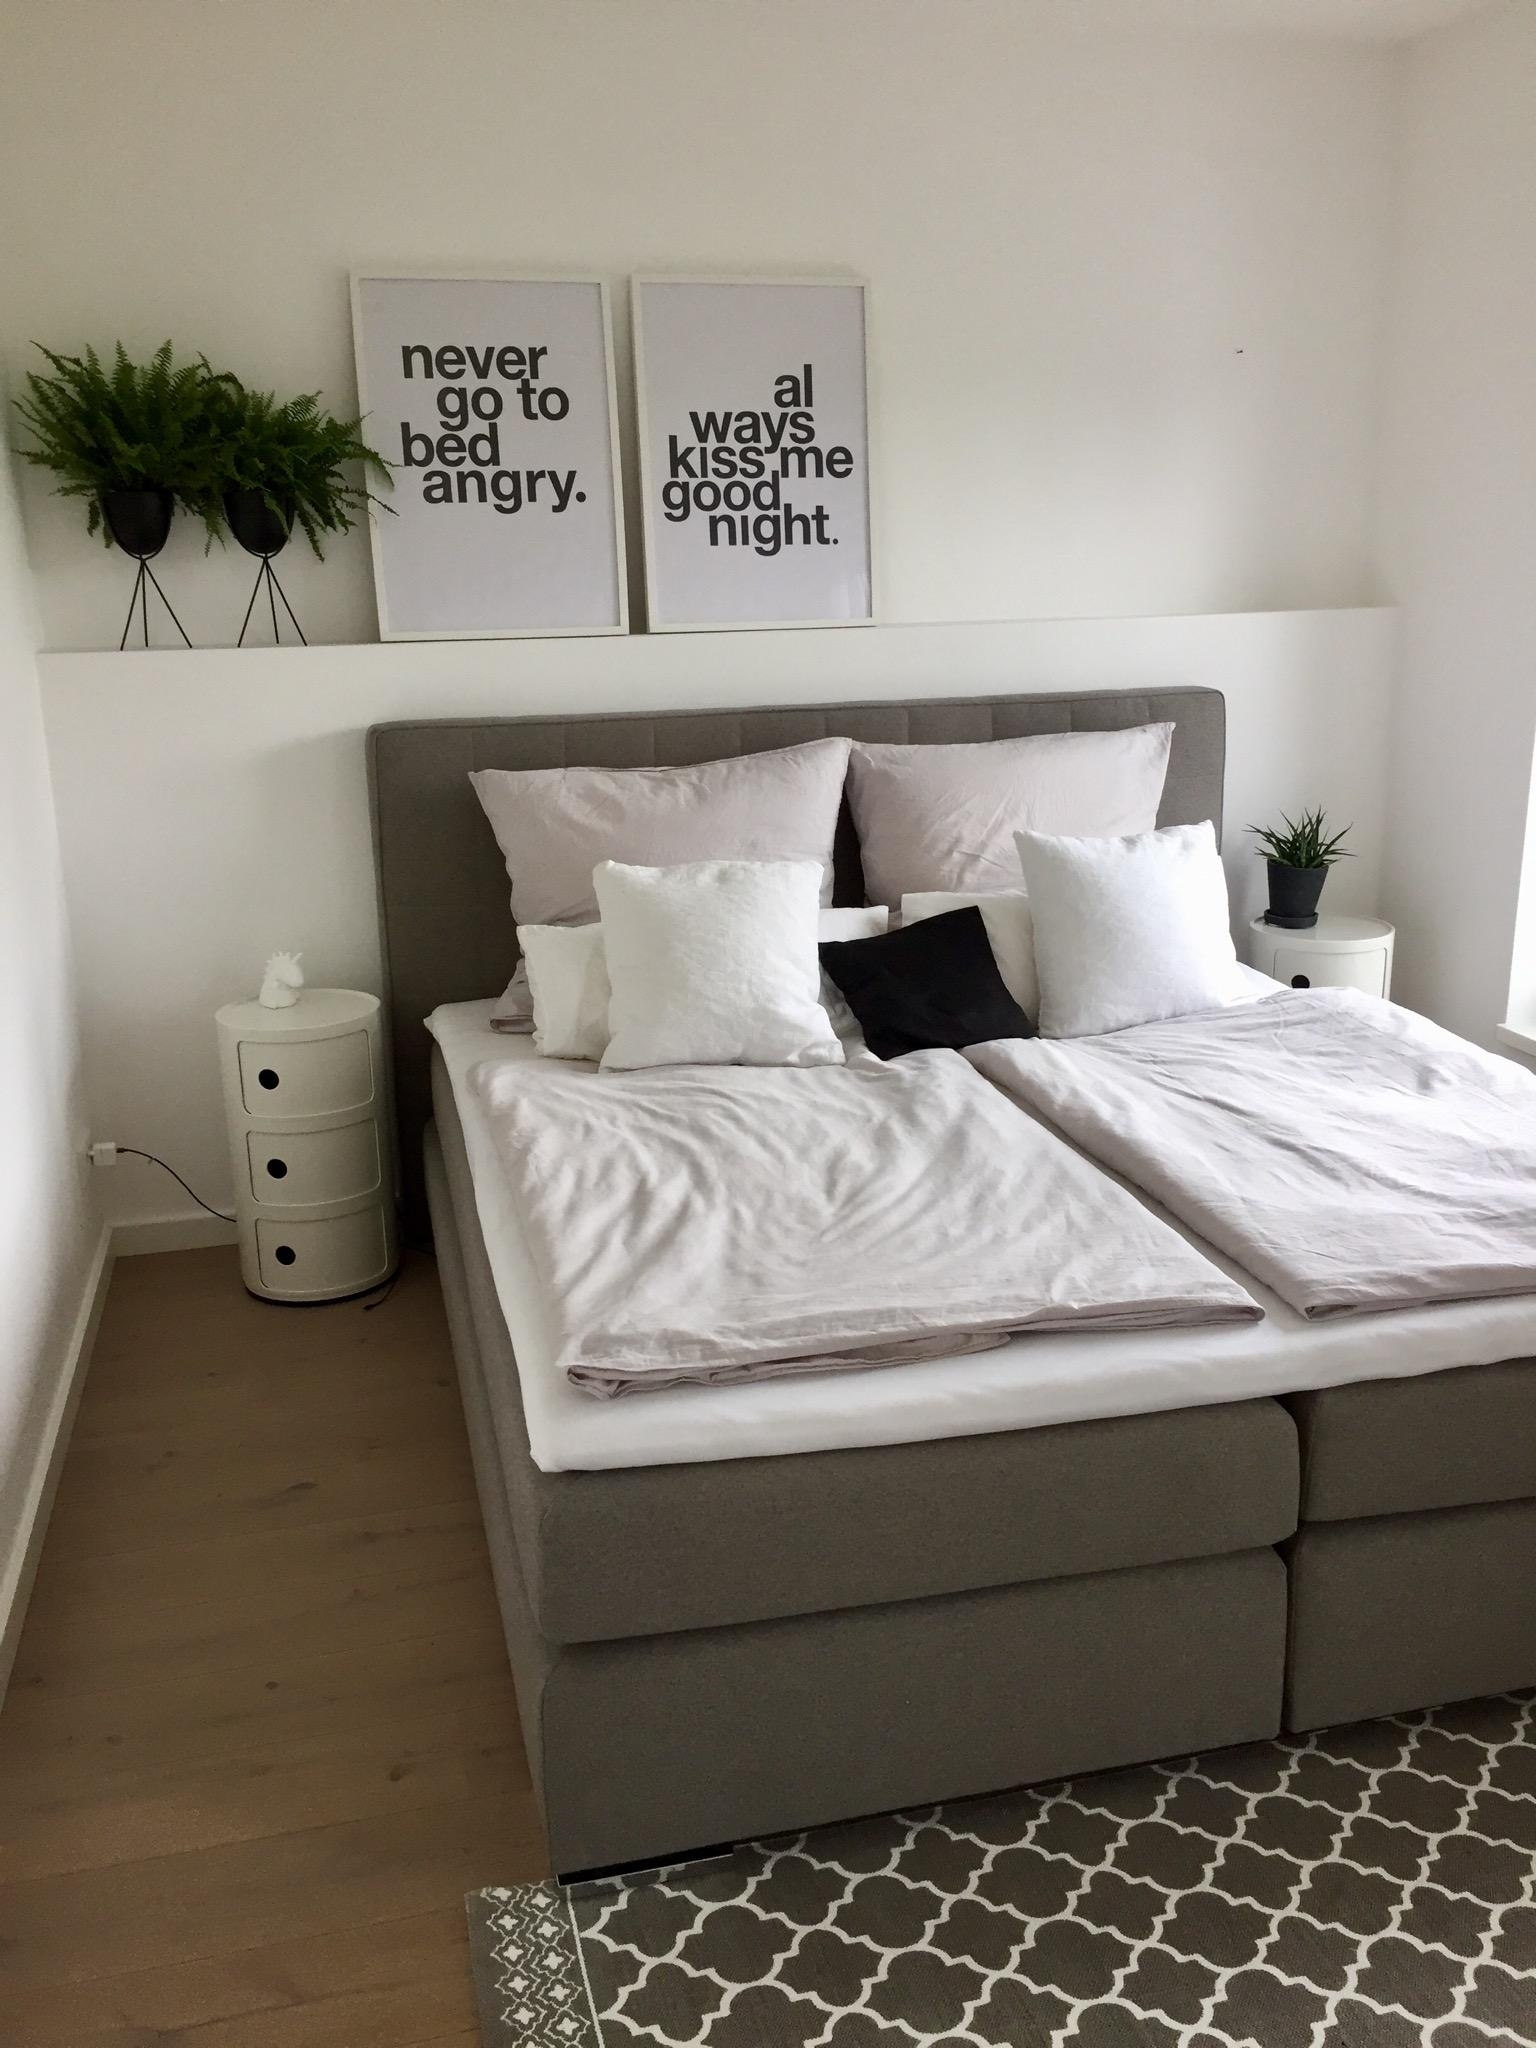 Never go to bed angry. #schlafzimmer #boxspringbett #scandistyle #interior #kartell #lieblingsplatz